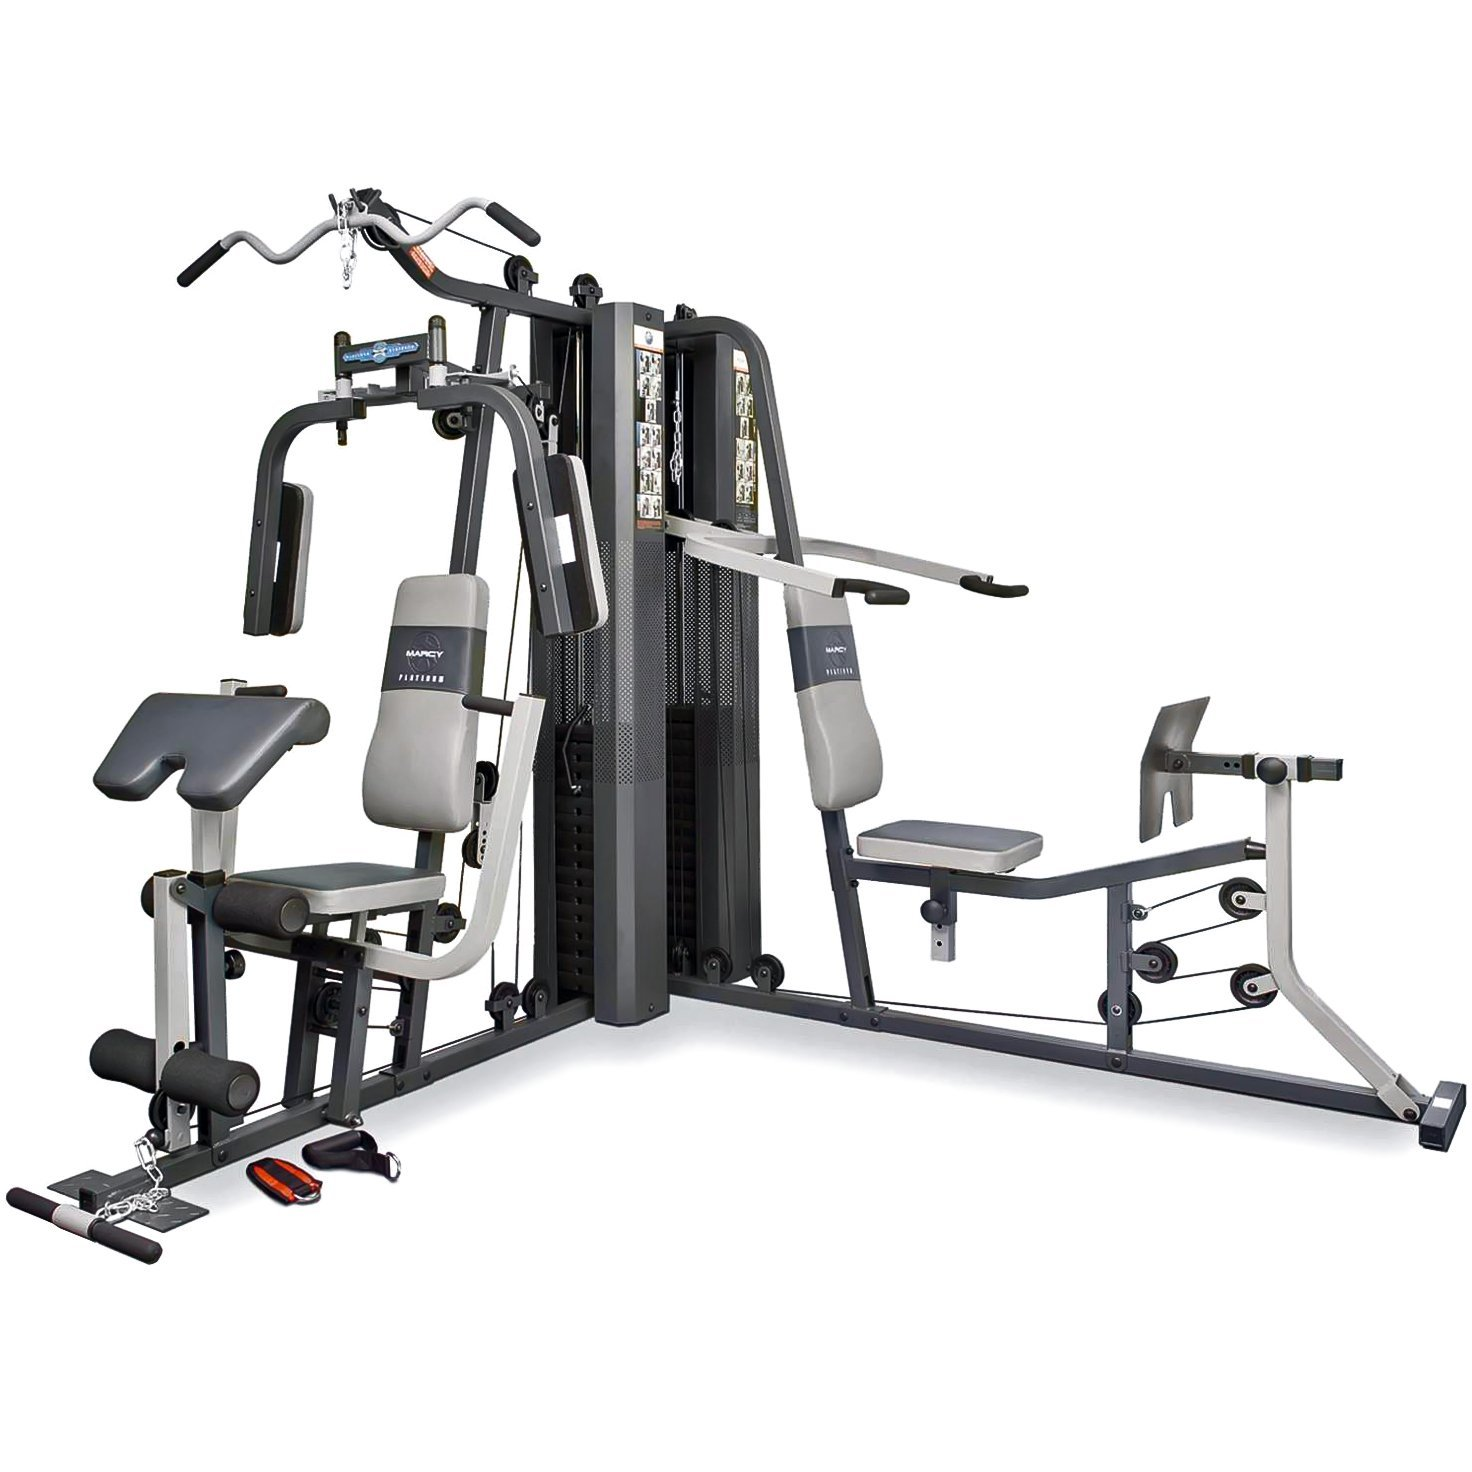 Marcy GS99 Dual Stack Home Gym Review